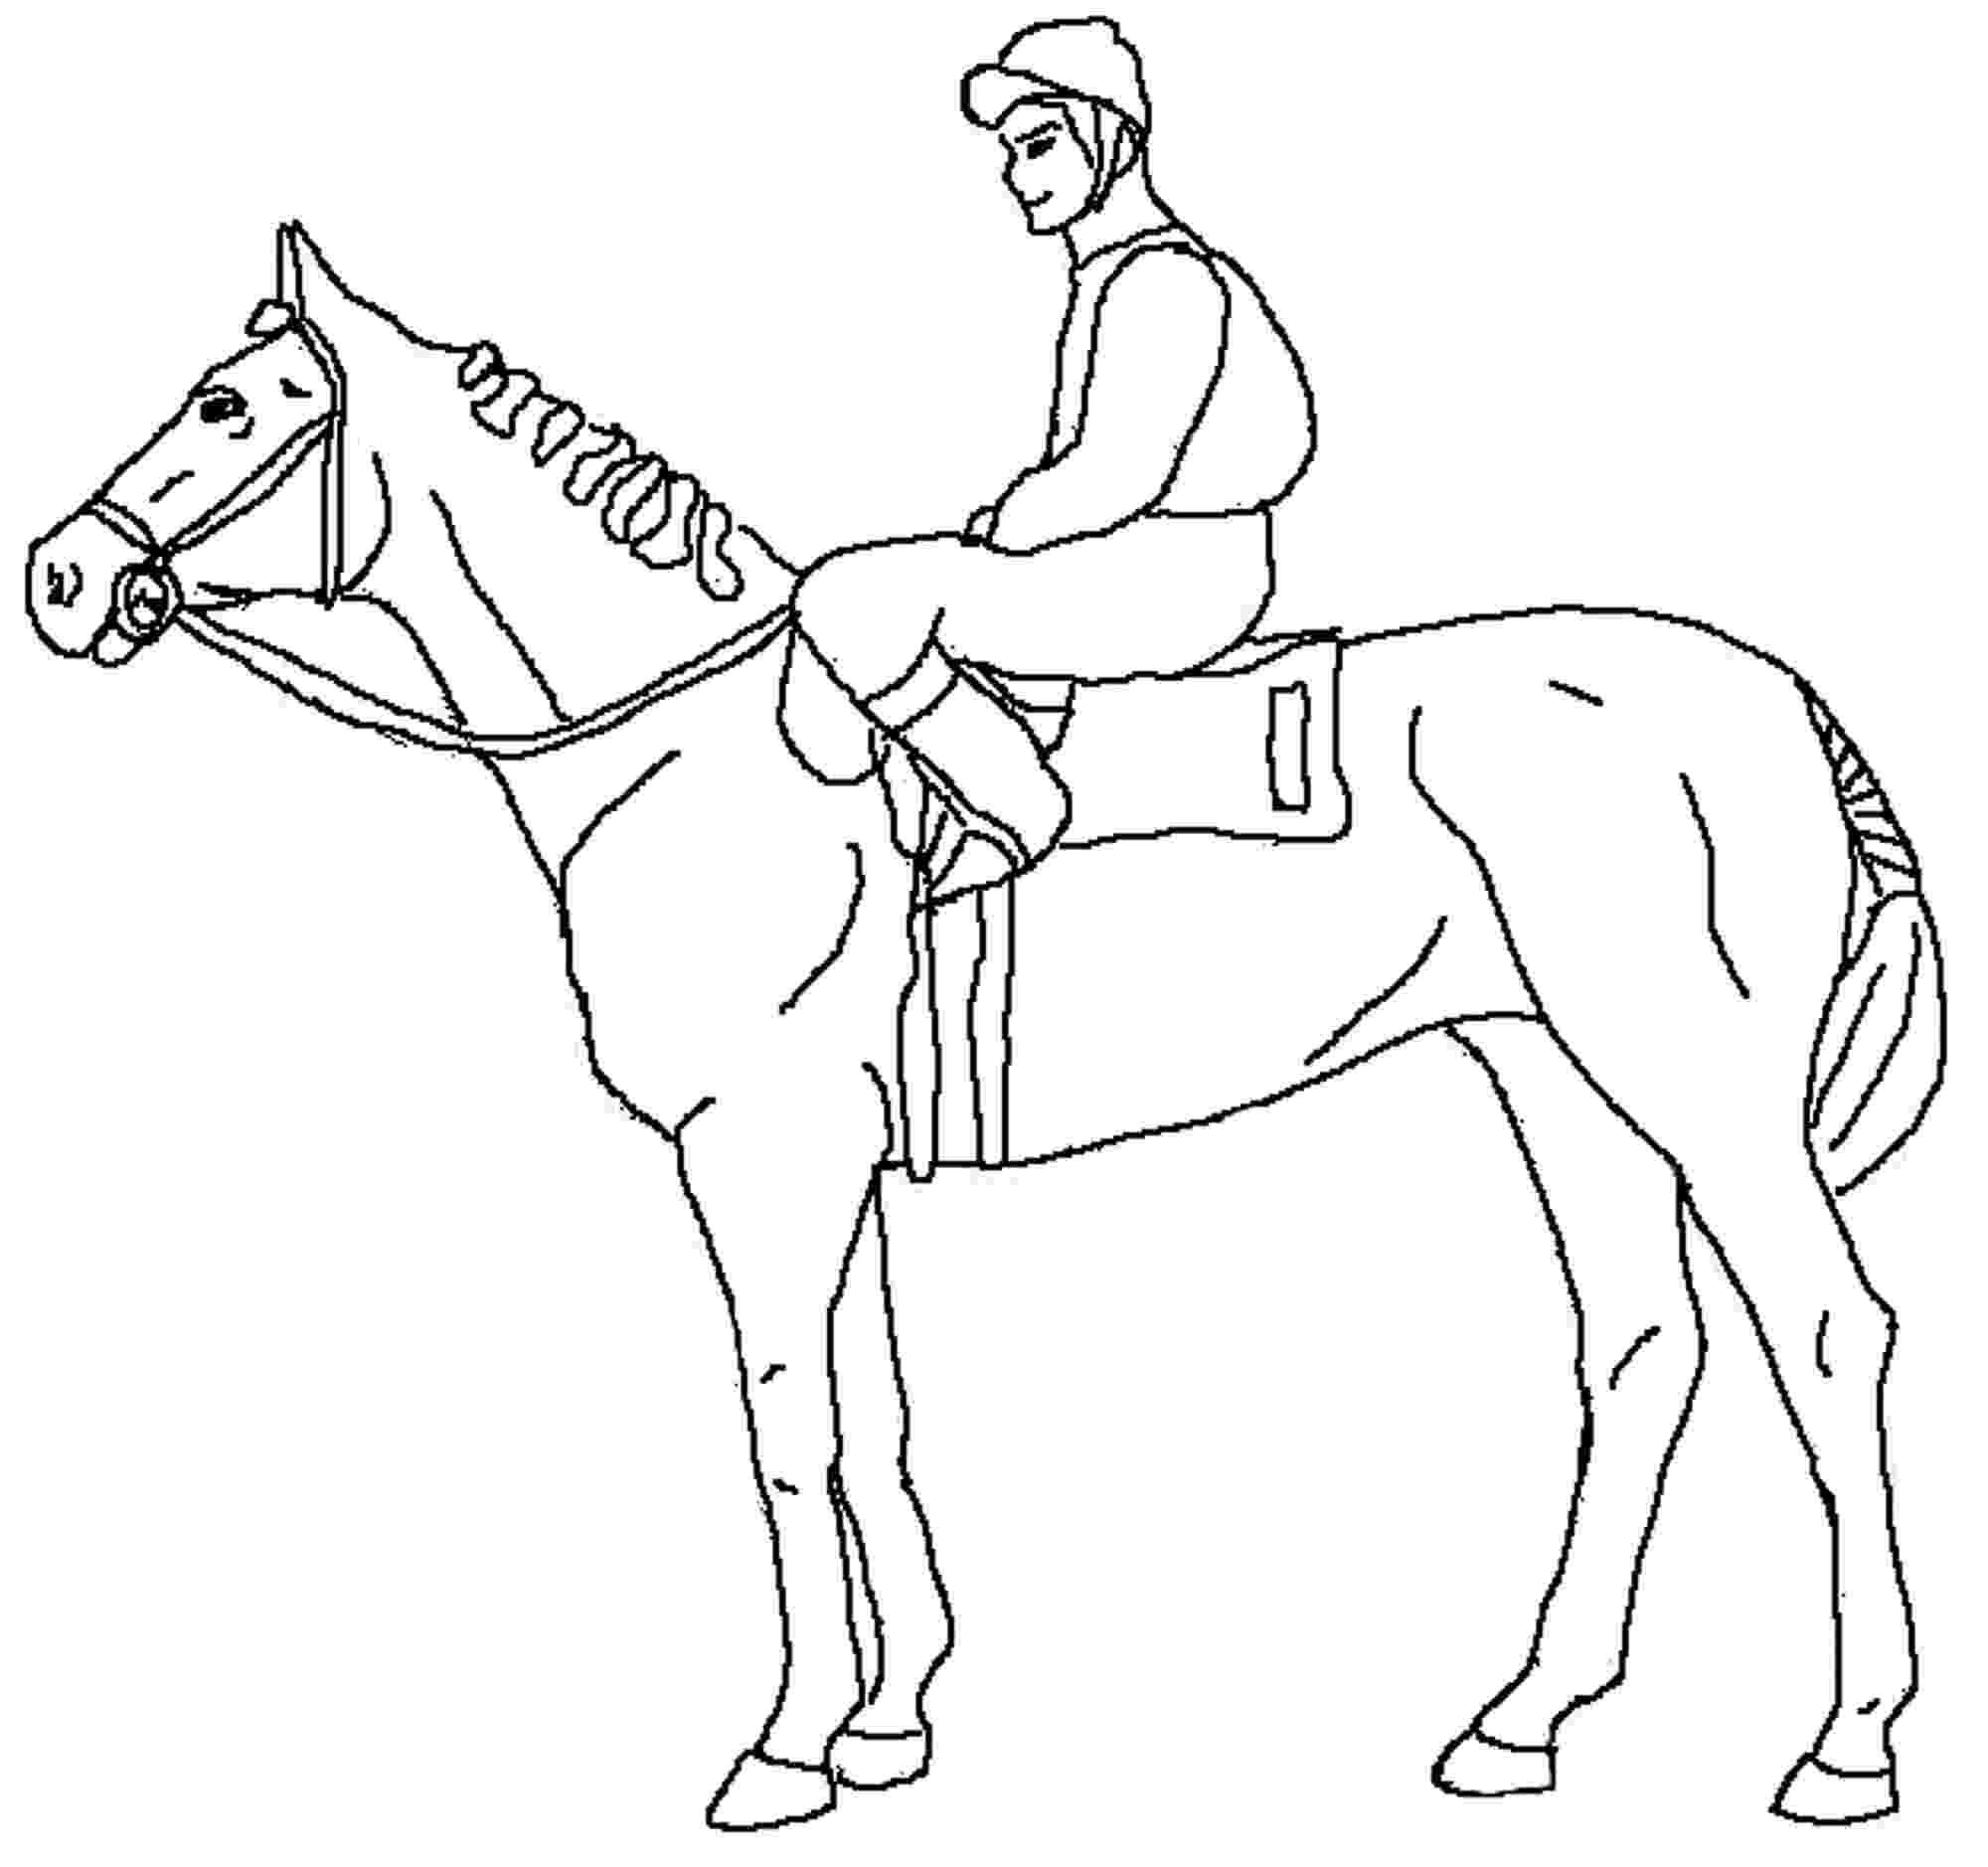 colouring horse fun horse coloring pages for your kids printable colouring horse 1 1